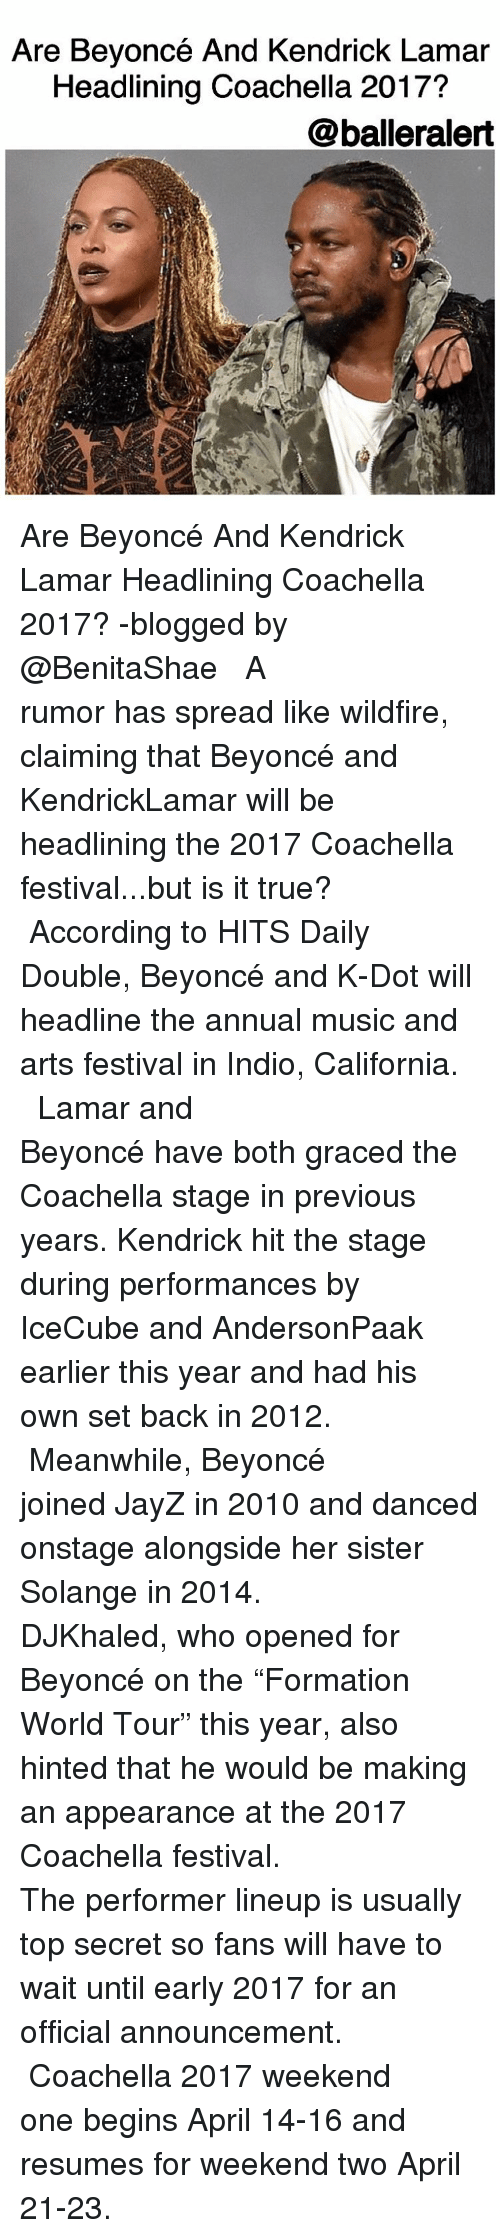 "Coachella, Dancing, and Kendrick Lamar: Are Beyoncé And Kendrick Lamar  Headlining Coachella 2017?  @balleralert Are Beyoncé And Kendrick Lamar Headlining Coachella 2017? -blogged by @BenitaShae ⠀⠀⠀⠀⠀⠀⠀⠀⠀ ⠀⠀⠀⠀⠀⠀⠀⠀⠀ A rumor has spread like wildfire, claiming that Beyoncé and KendrickLamar will be headlining the 2017 Coachella festival...but is it true? ⠀⠀⠀⠀⠀⠀⠀⠀⠀ ⠀⠀⠀⠀⠀⠀⠀⠀⠀ According to HITS Daily Double, Beyoncé and K-Dot will headline the annual music and arts festival in Indio, California. ⠀⠀⠀⠀⠀⠀⠀⠀⠀ ⠀⠀⠀⠀⠀⠀⠀⠀⠀ Lamar and Beyoncé have both graced the Coachella stage in previous years. Kendrick hit the stage during performances by IceCube and AndersonPaak earlier this year and had his own set back in 2012. ⠀⠀⠀⠀⠀⠀⠀⠀⠀ ⠀⠀⠀⠀⠀⠀⠀⠀⠀ Meanwhile, Beyoncé joined JayZ in 2010 and danced onstage alongside her sister Solange in 2014. ⠀⠀⠀⠀⠀⠀⠀⠀⠀ ⠀⠀⠀⠀⠀⠀⠀⠀⠀ DJKhaled, who opened for Beyoncé on the ""Formation World Tour"" this year, also hinted that he would be making an appearance at the 2017 Coachella festival. ⠀⠀⠀⠀⠀⠀⠀⠀⠀ ⠀⠀⠀⠀⠀⠀⠀⠀⠀ The performer lineup is usually top secret so fans will have to wait until early 2017 for an official announcement. ⠀⠀⠀⠀⠀⠀⠀⠀⠀ ⠀⠀⠀⠀⠀⠀⠀⠀⠀ Coachella 2017 weekend one begins April 14-16 and resumes for weekend two April 21-23."